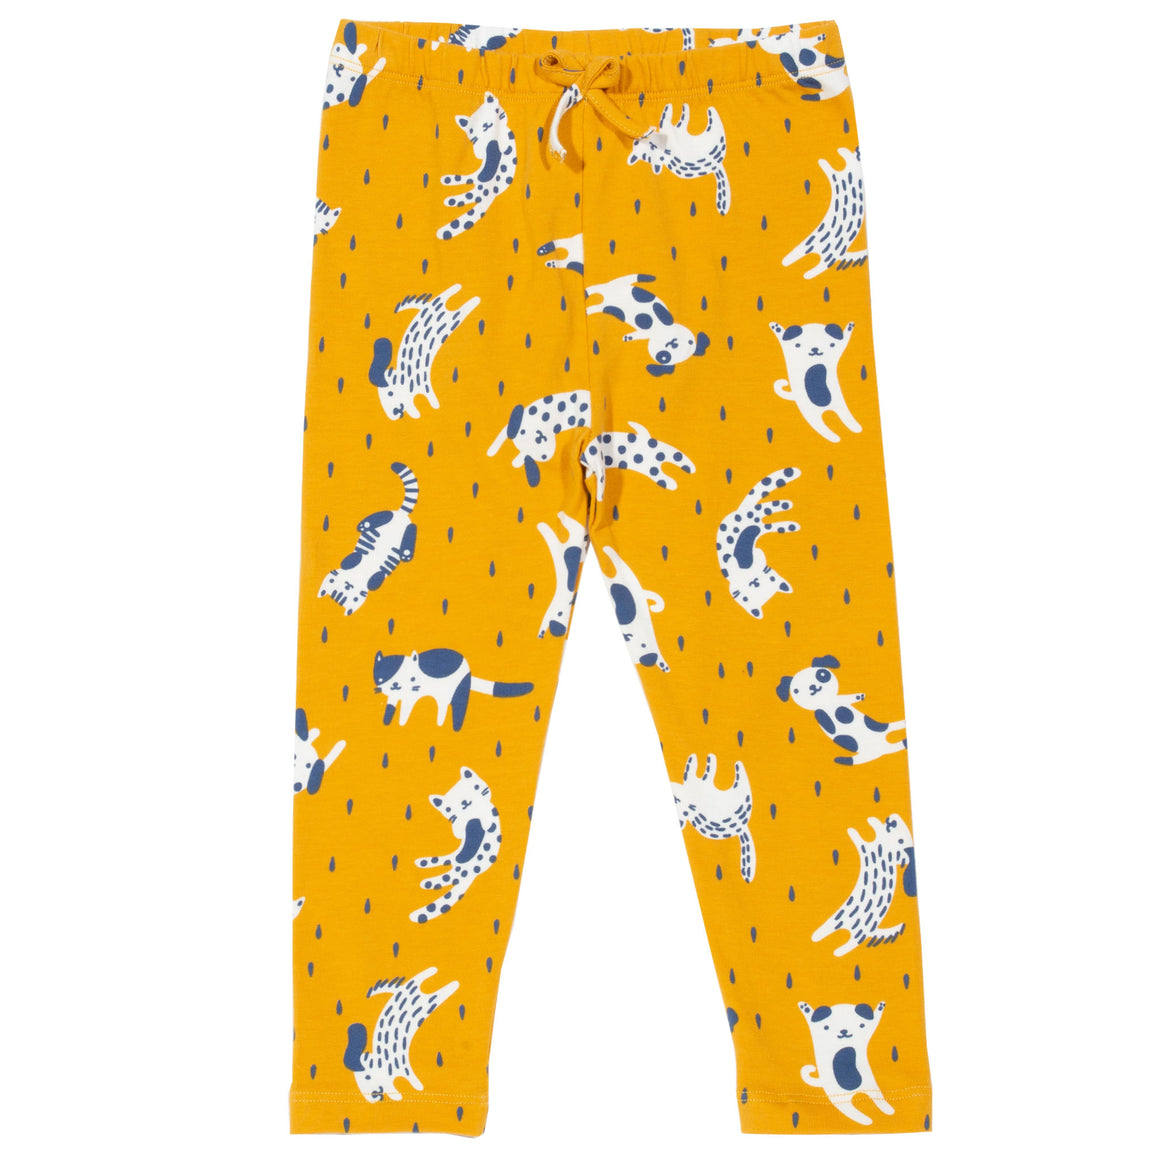 Cats & Dogs leggings